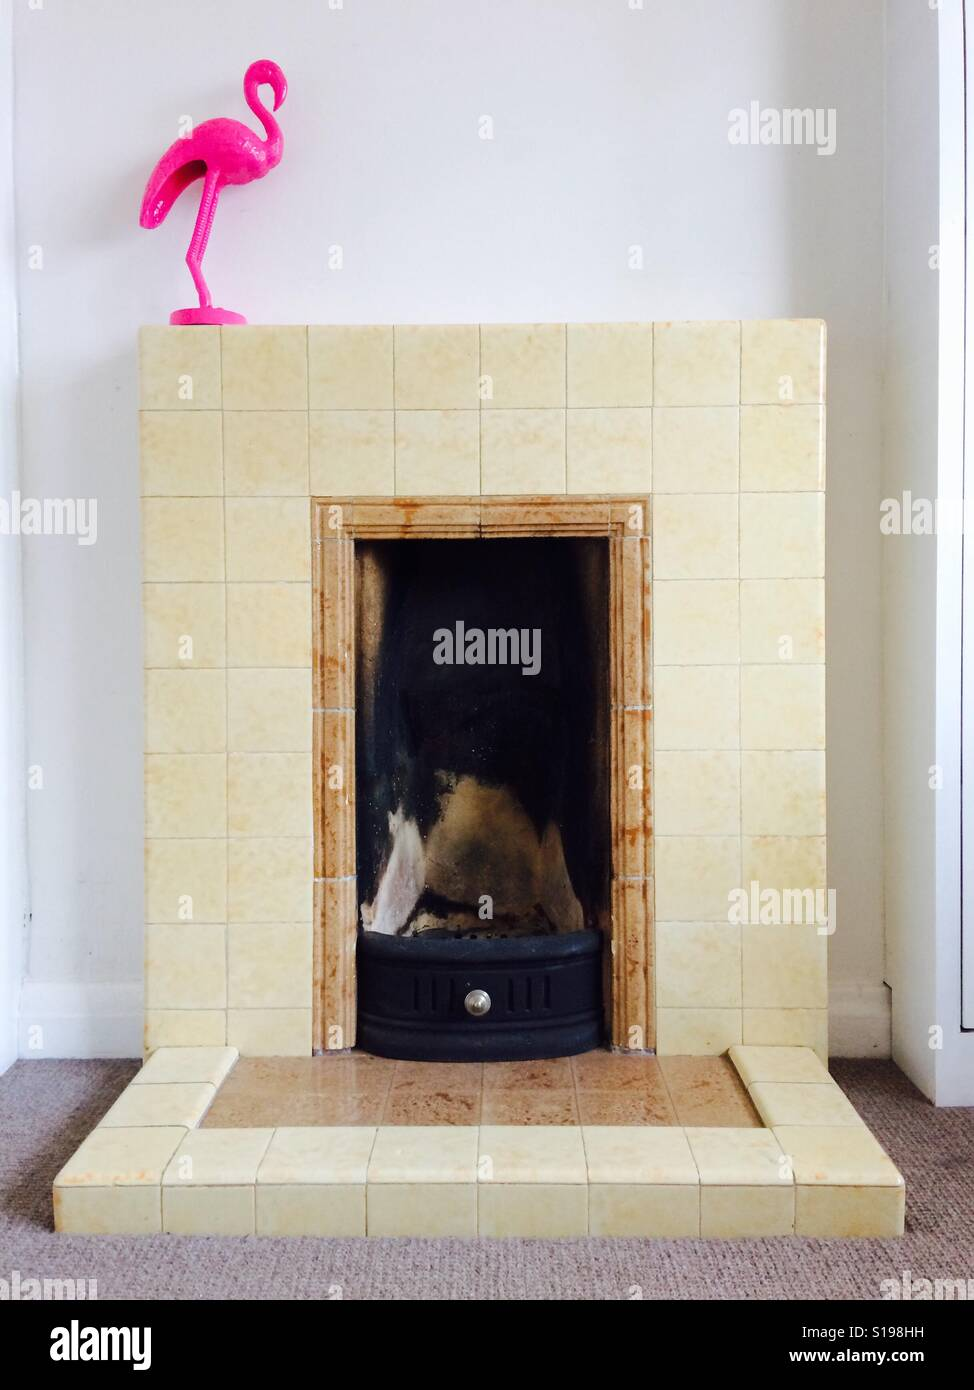 Pink flamingo on a vintage 1940s fire place. - Stock Image